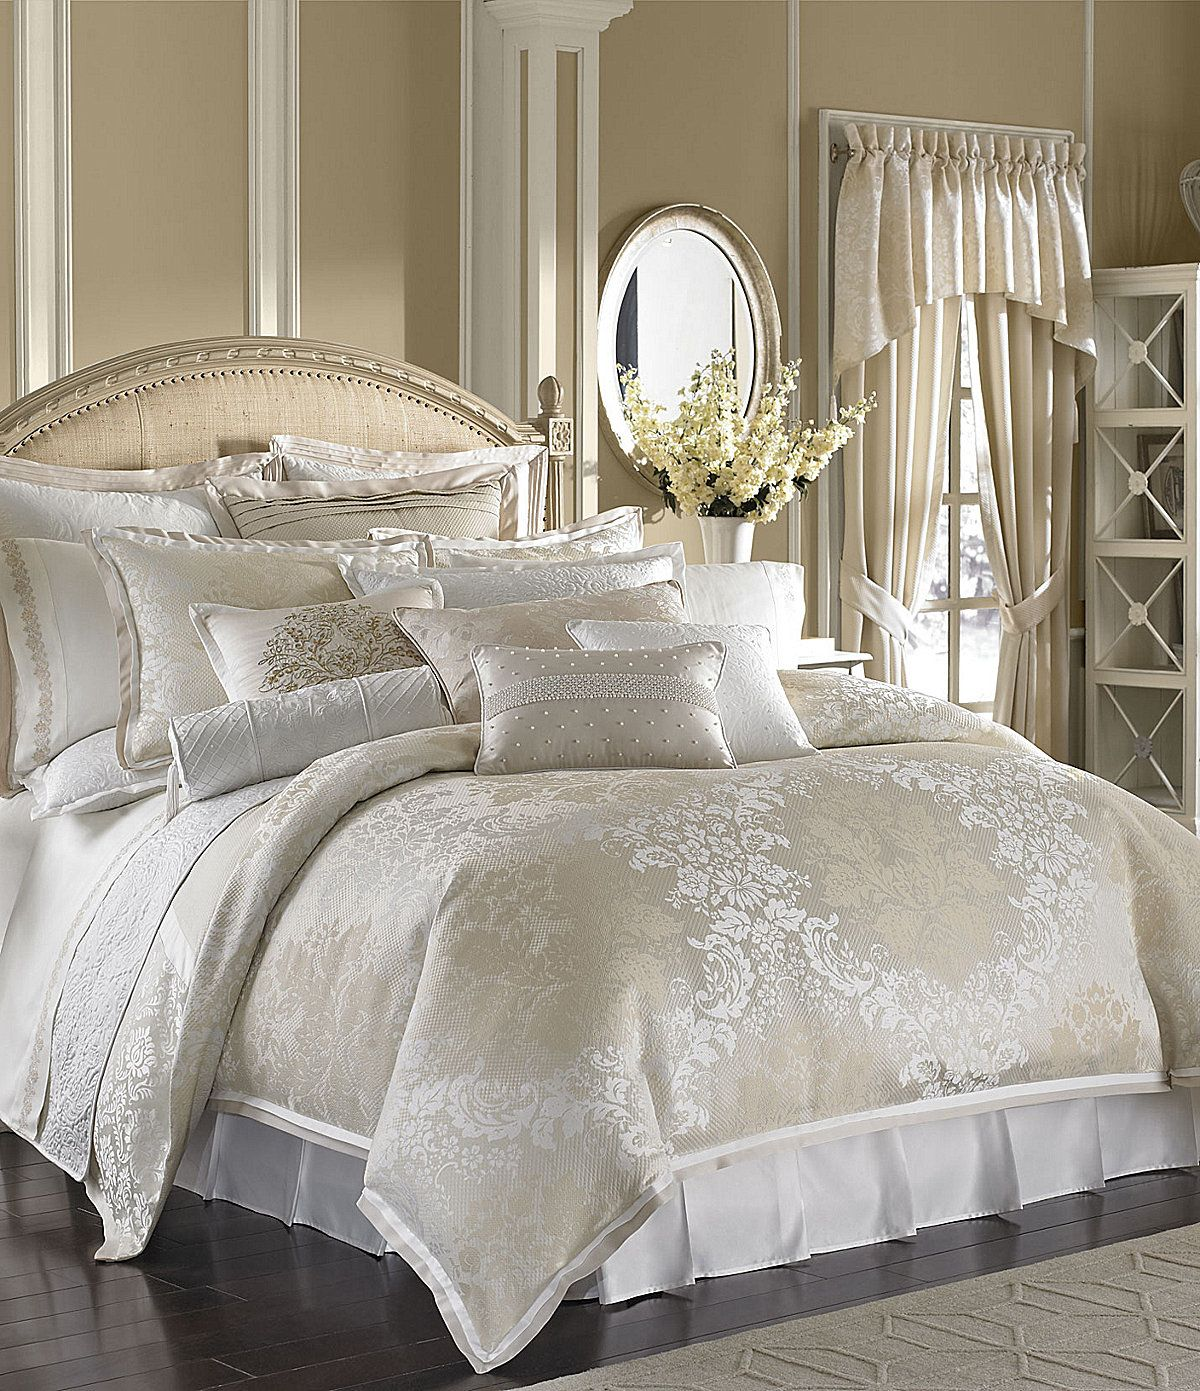 Reba Guilded Age Reversible Bedding Collection Loving The White And Ivory